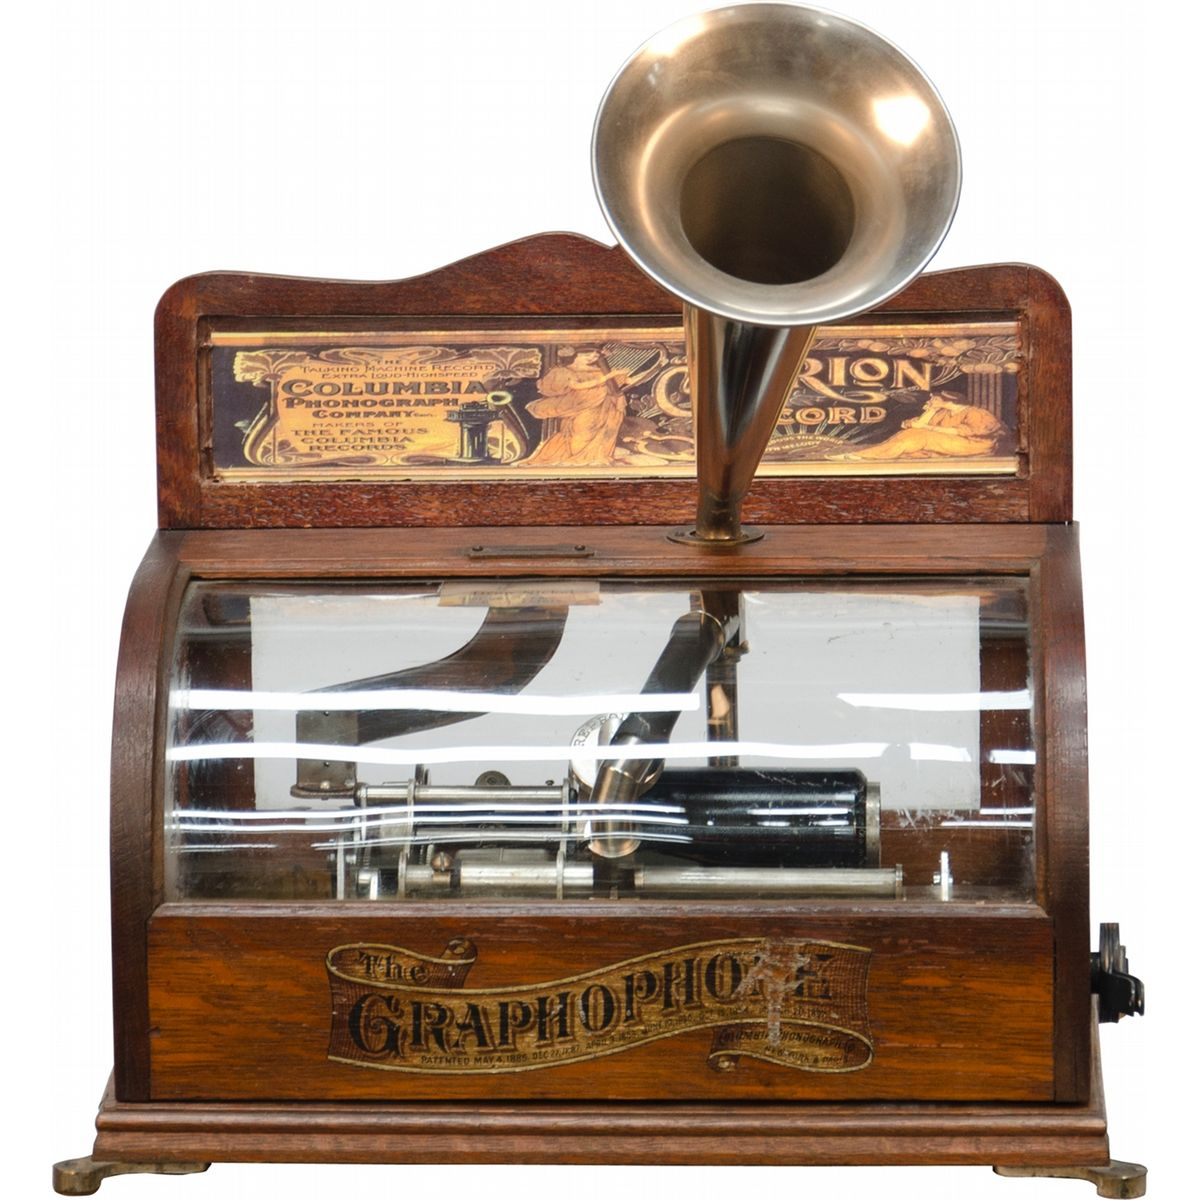 5 Cent The Graphophone Cylinder Music Player